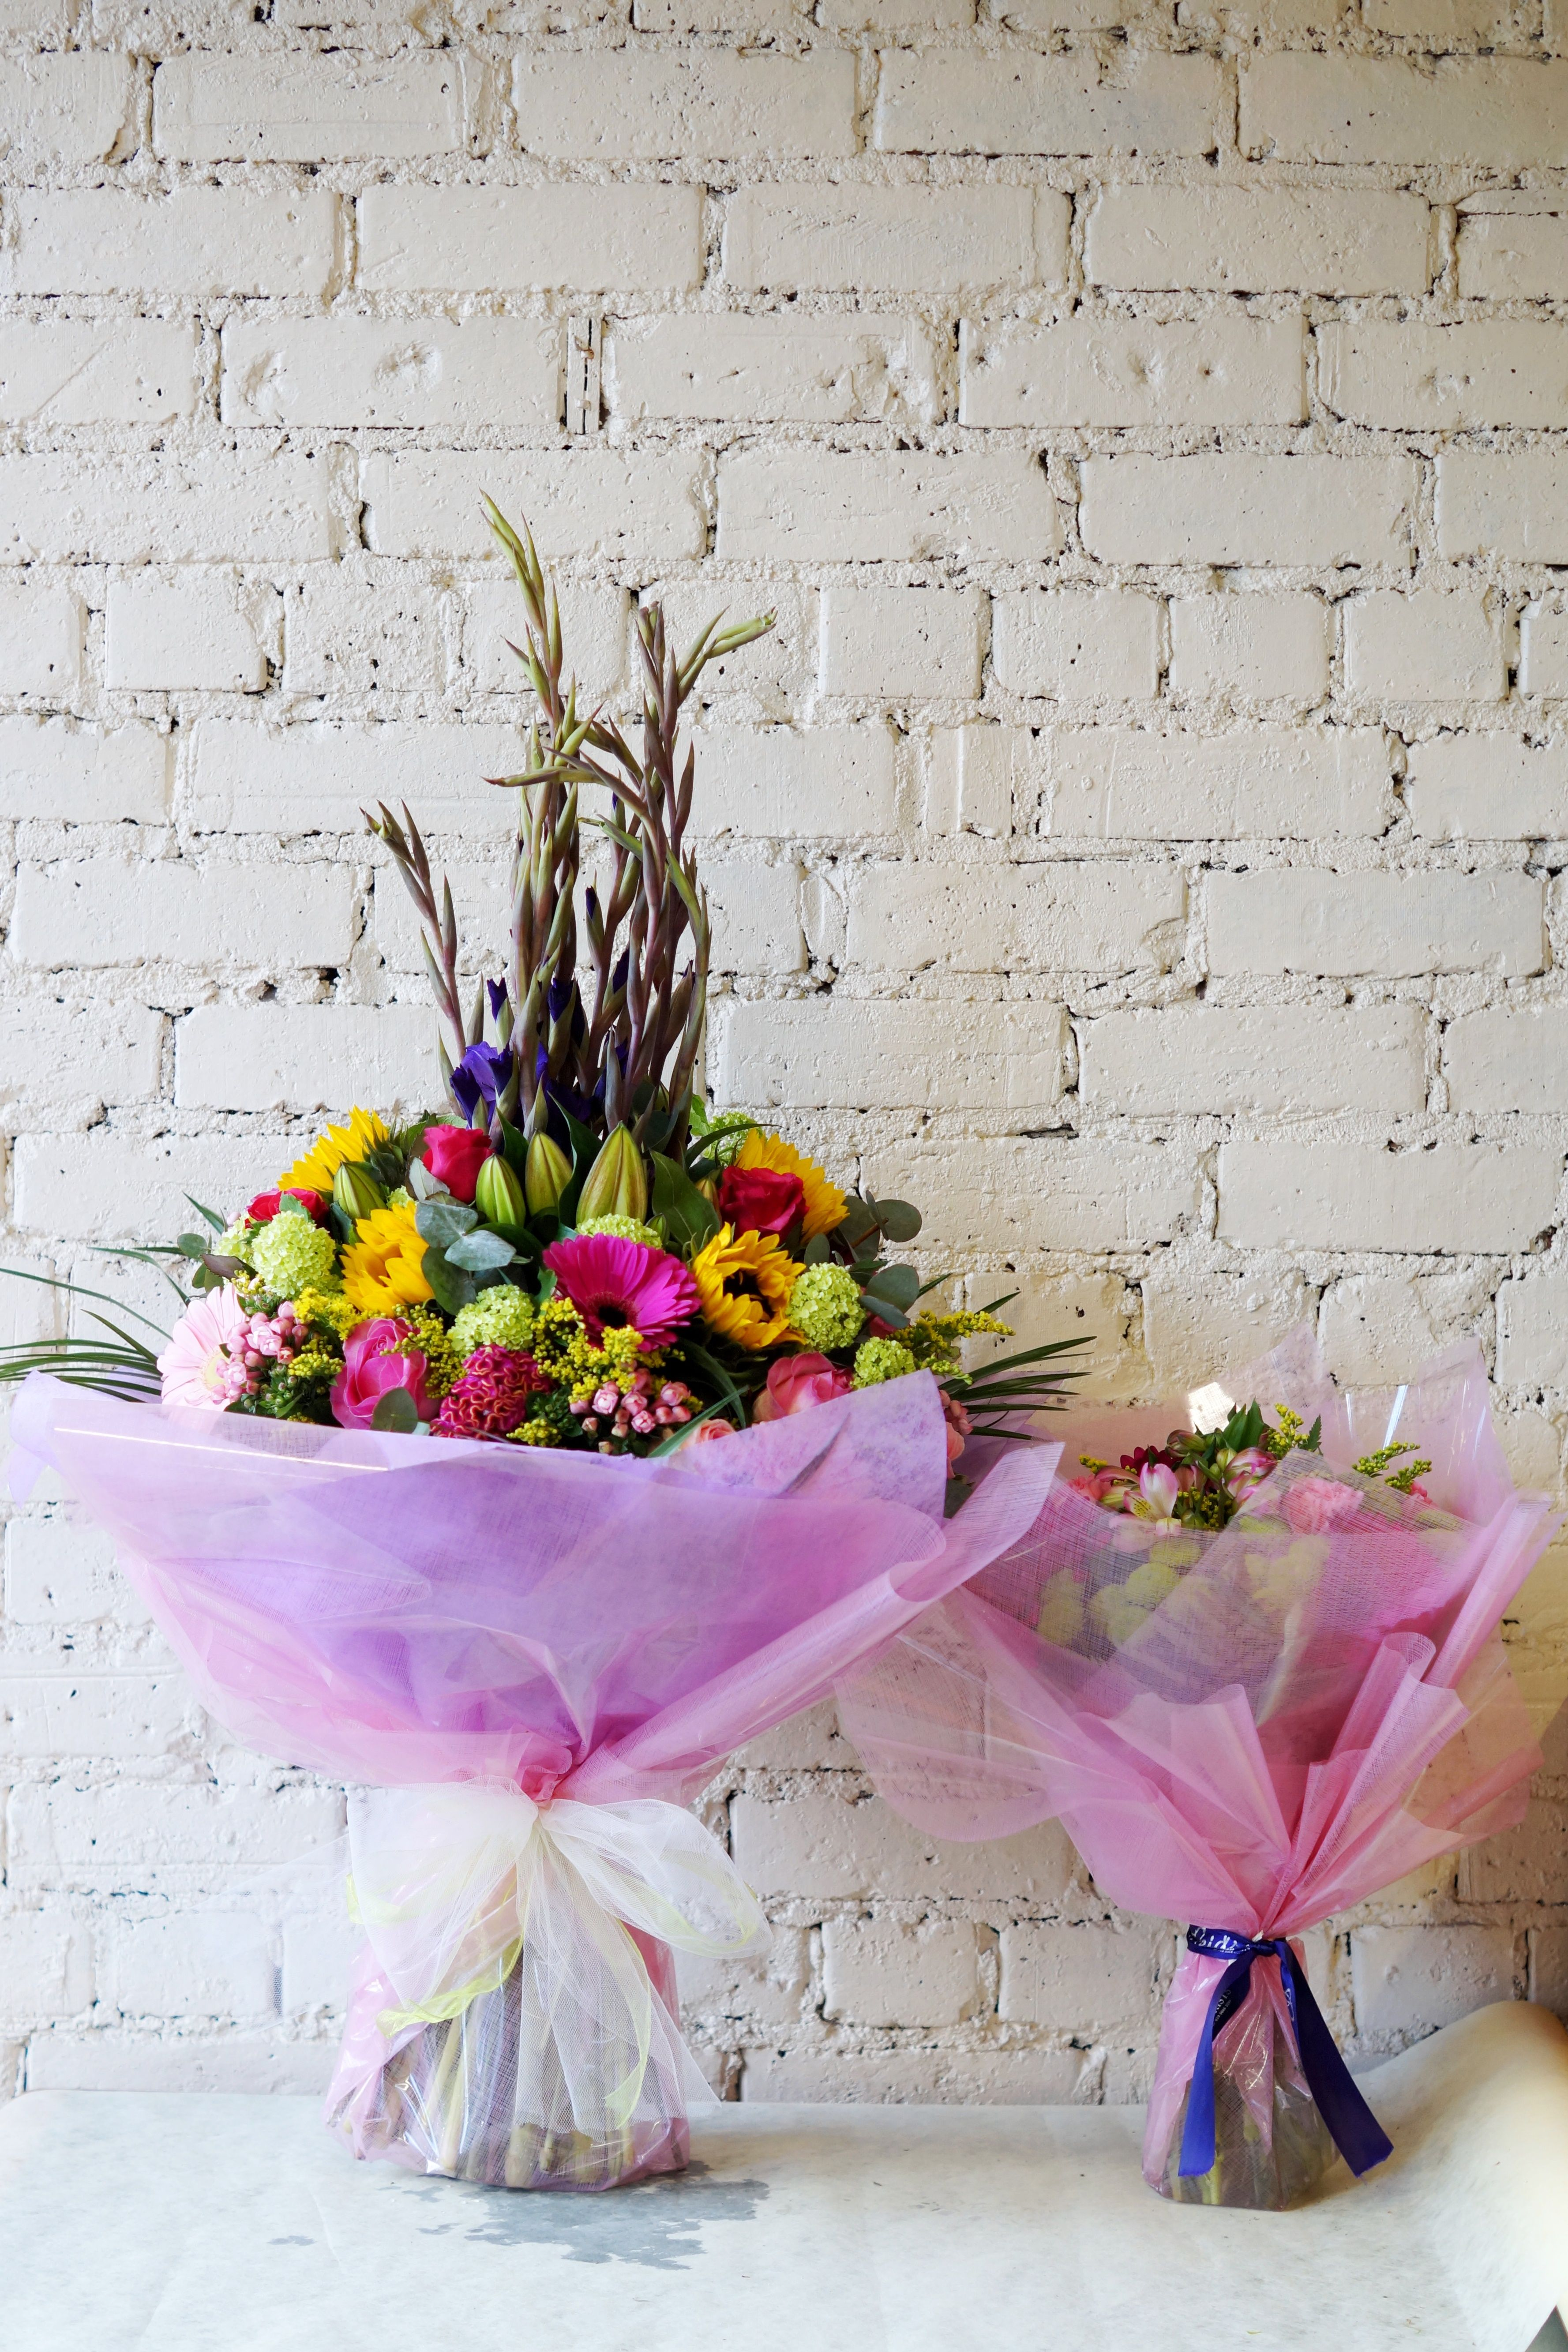 Check Out This Beautiful Beast Of A Bouquet That We Delivered